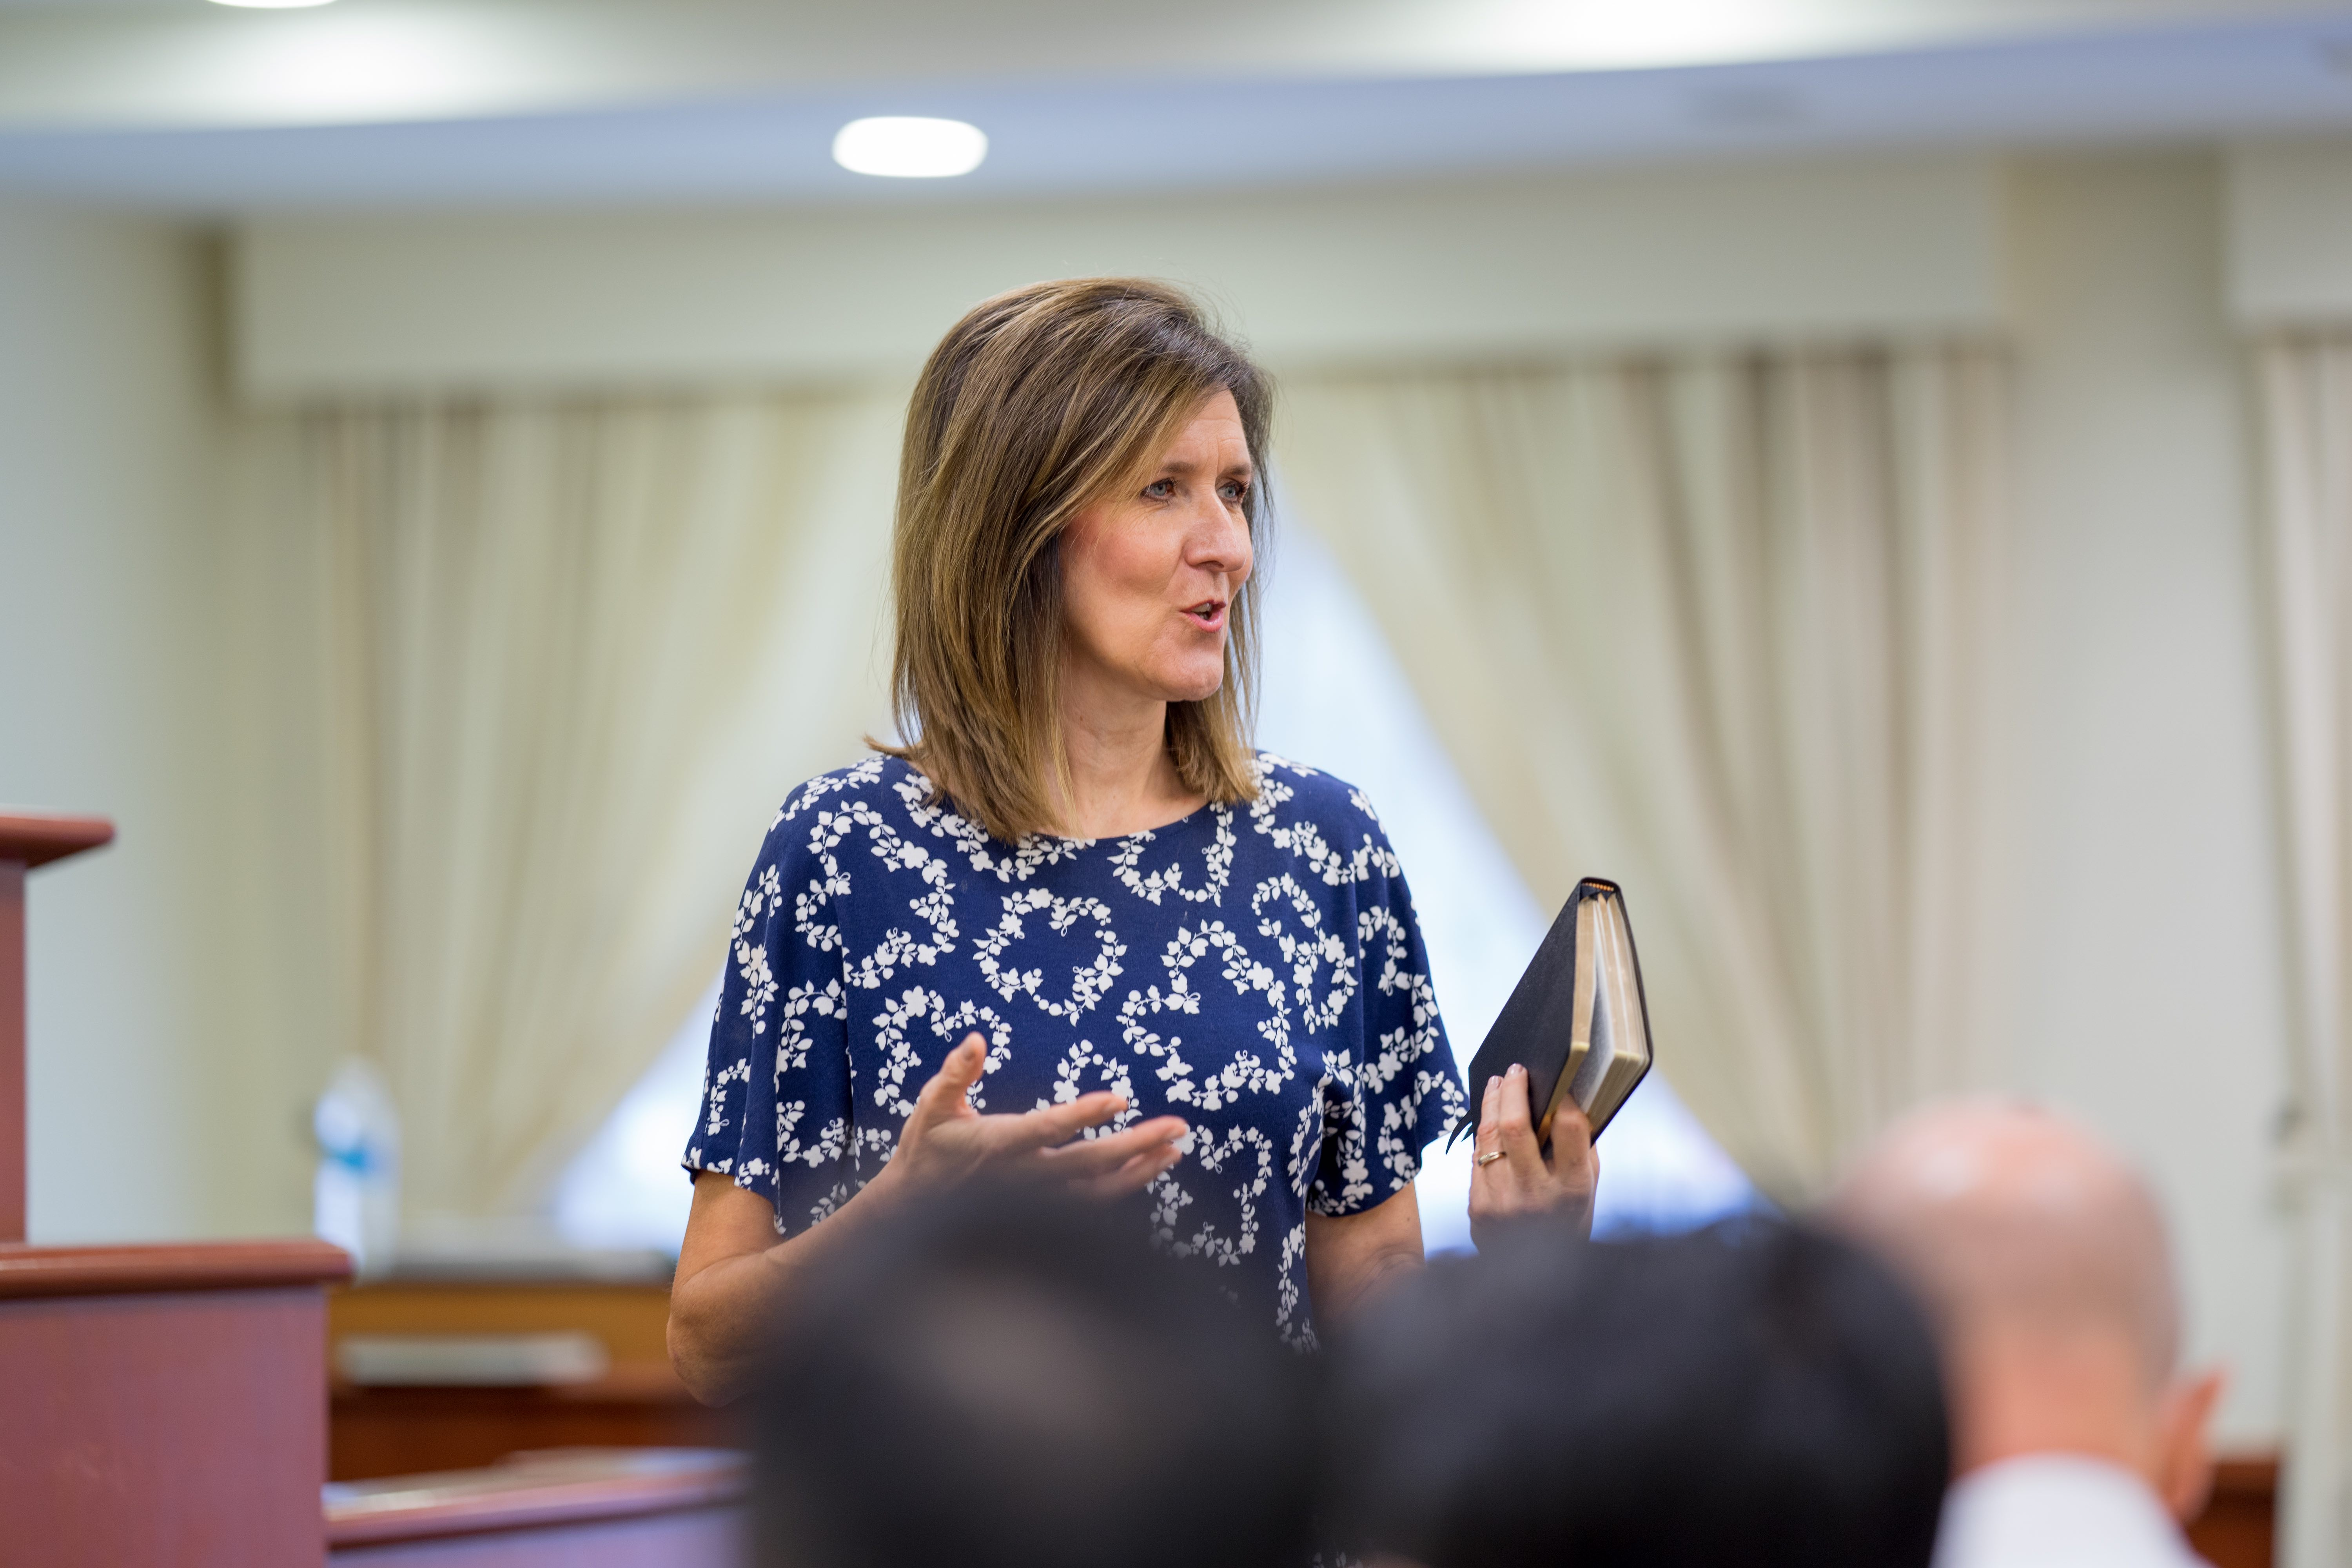 Sister Michelle D. Craig, first counselor in the Young Women general presidency, speaks during a leadership training meeting with members of the Church in Kuala Lumpur, Malaysia, during a visit to the Asia Area of the Church from Aug. 17 to 24, 2019.